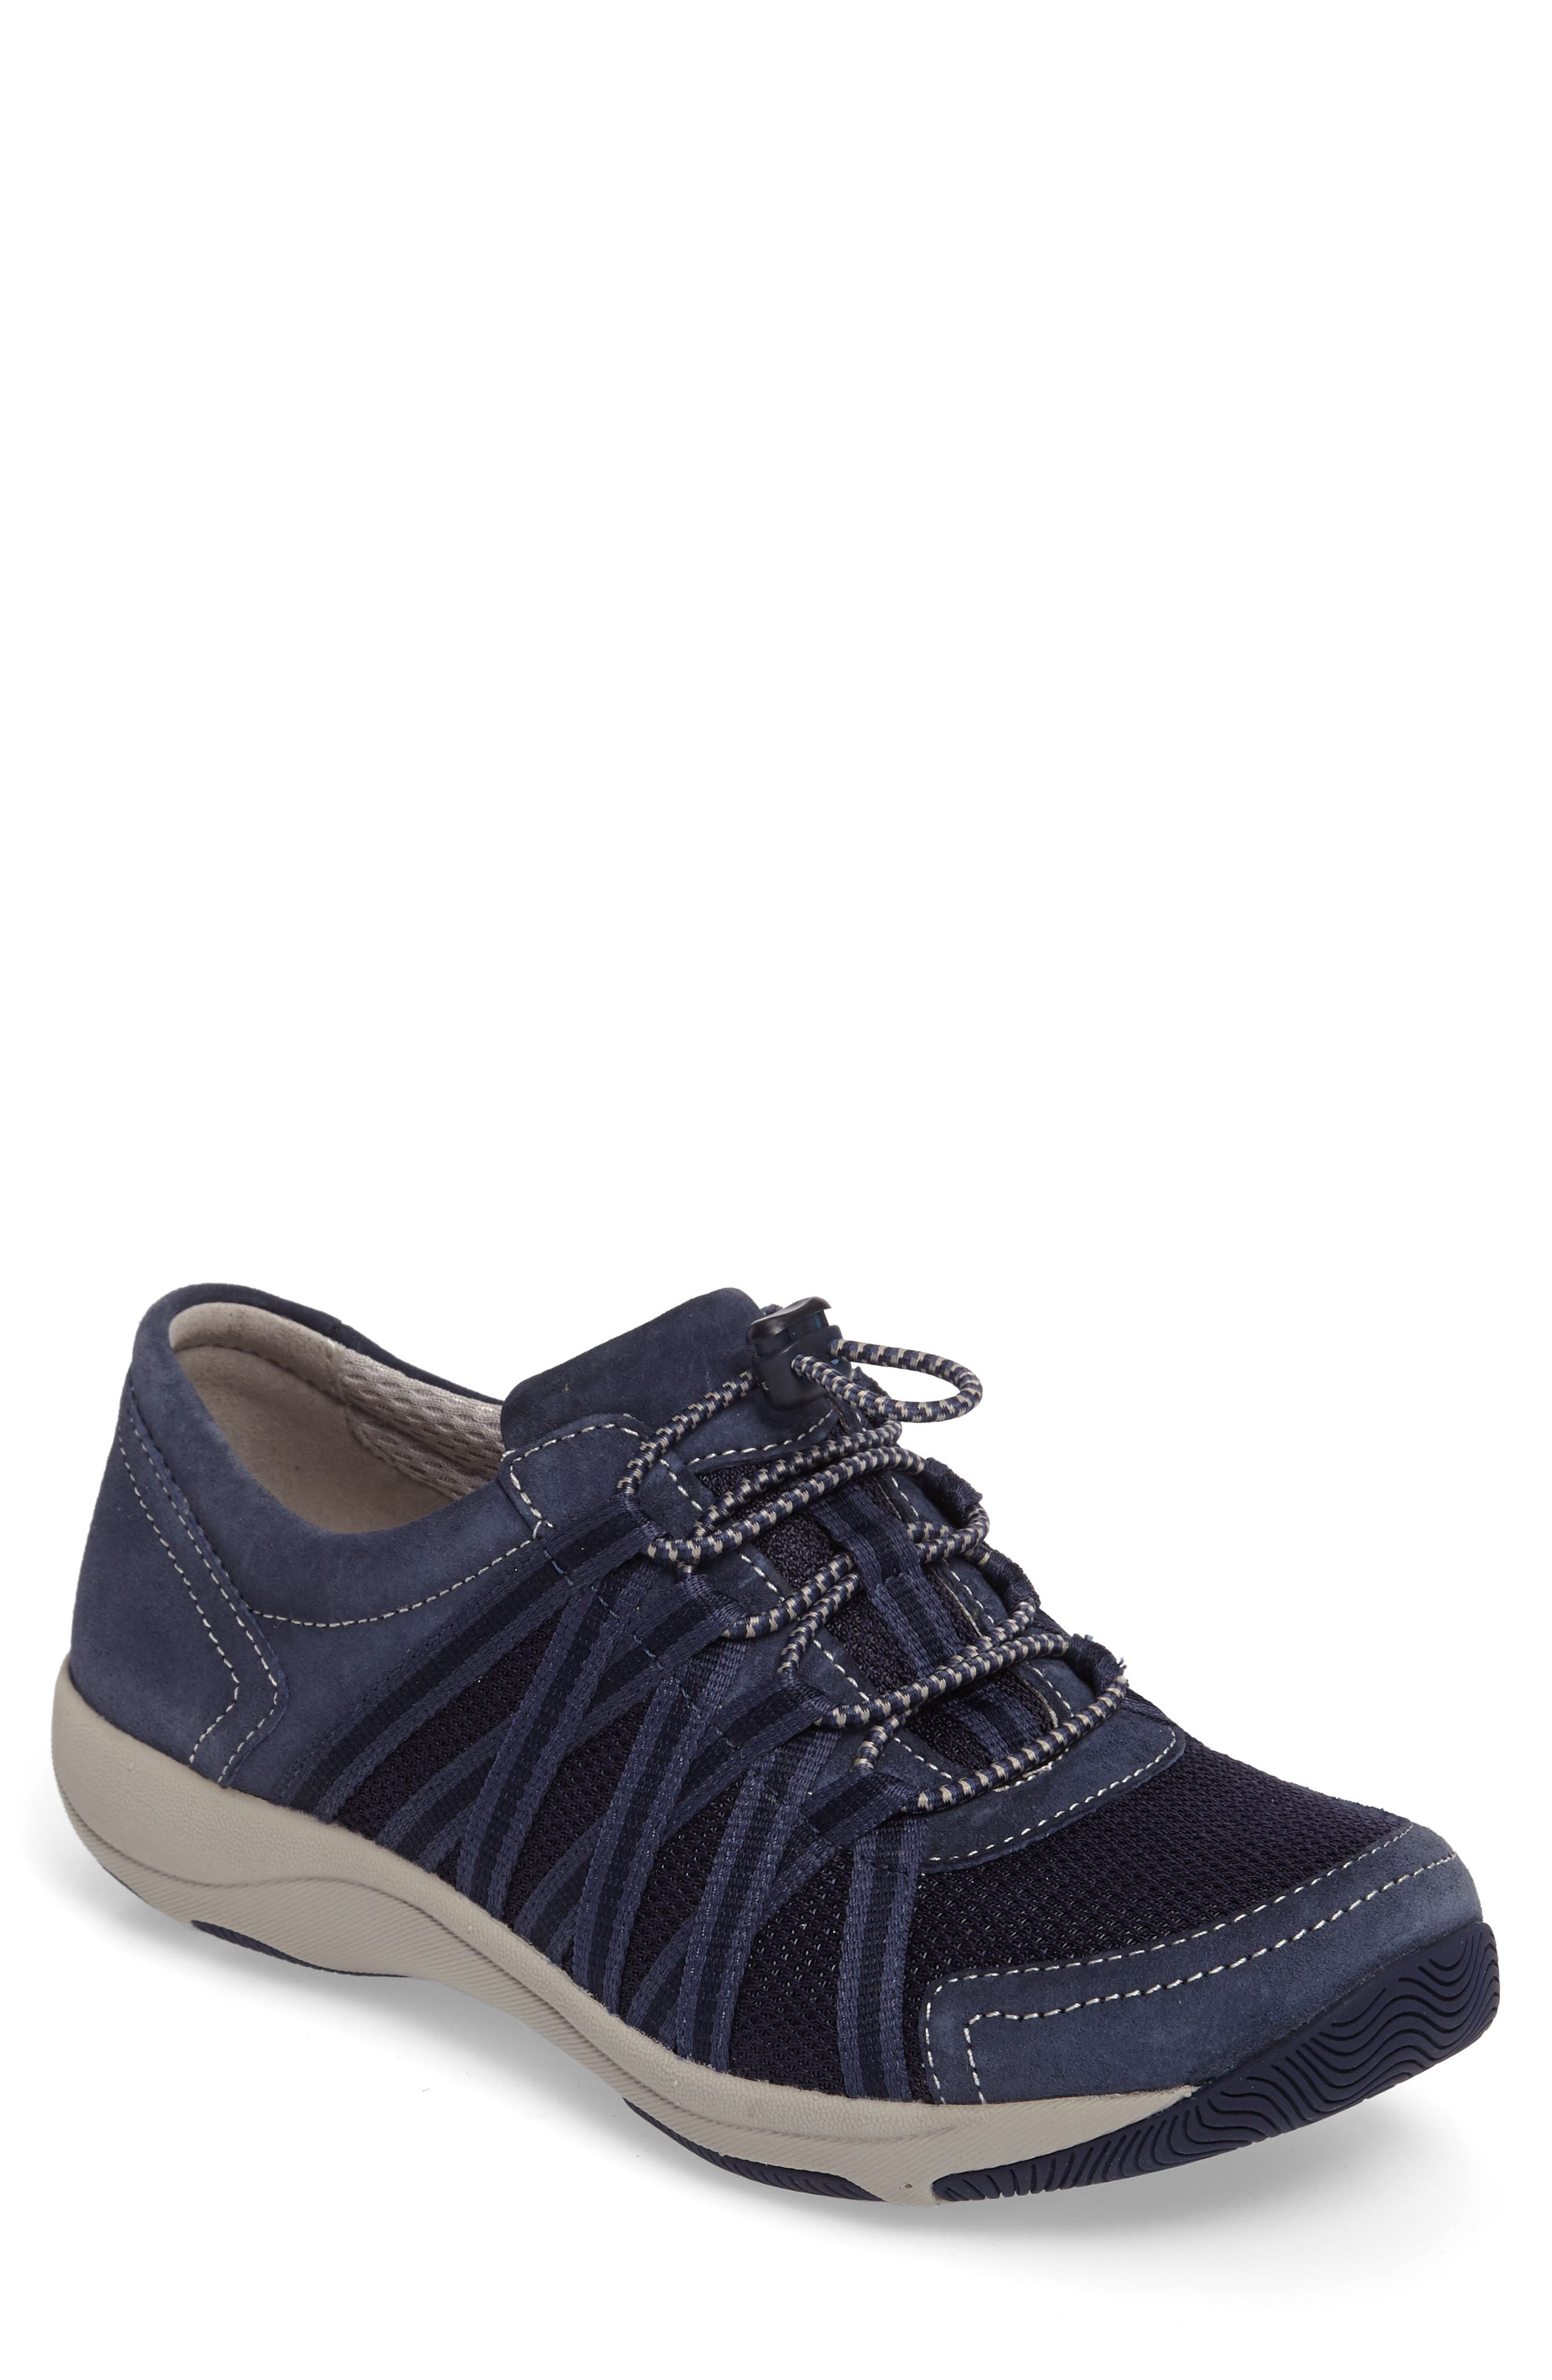 Halifax Collection Honor Sneaker,                             Alternate thumbnail 15, color,